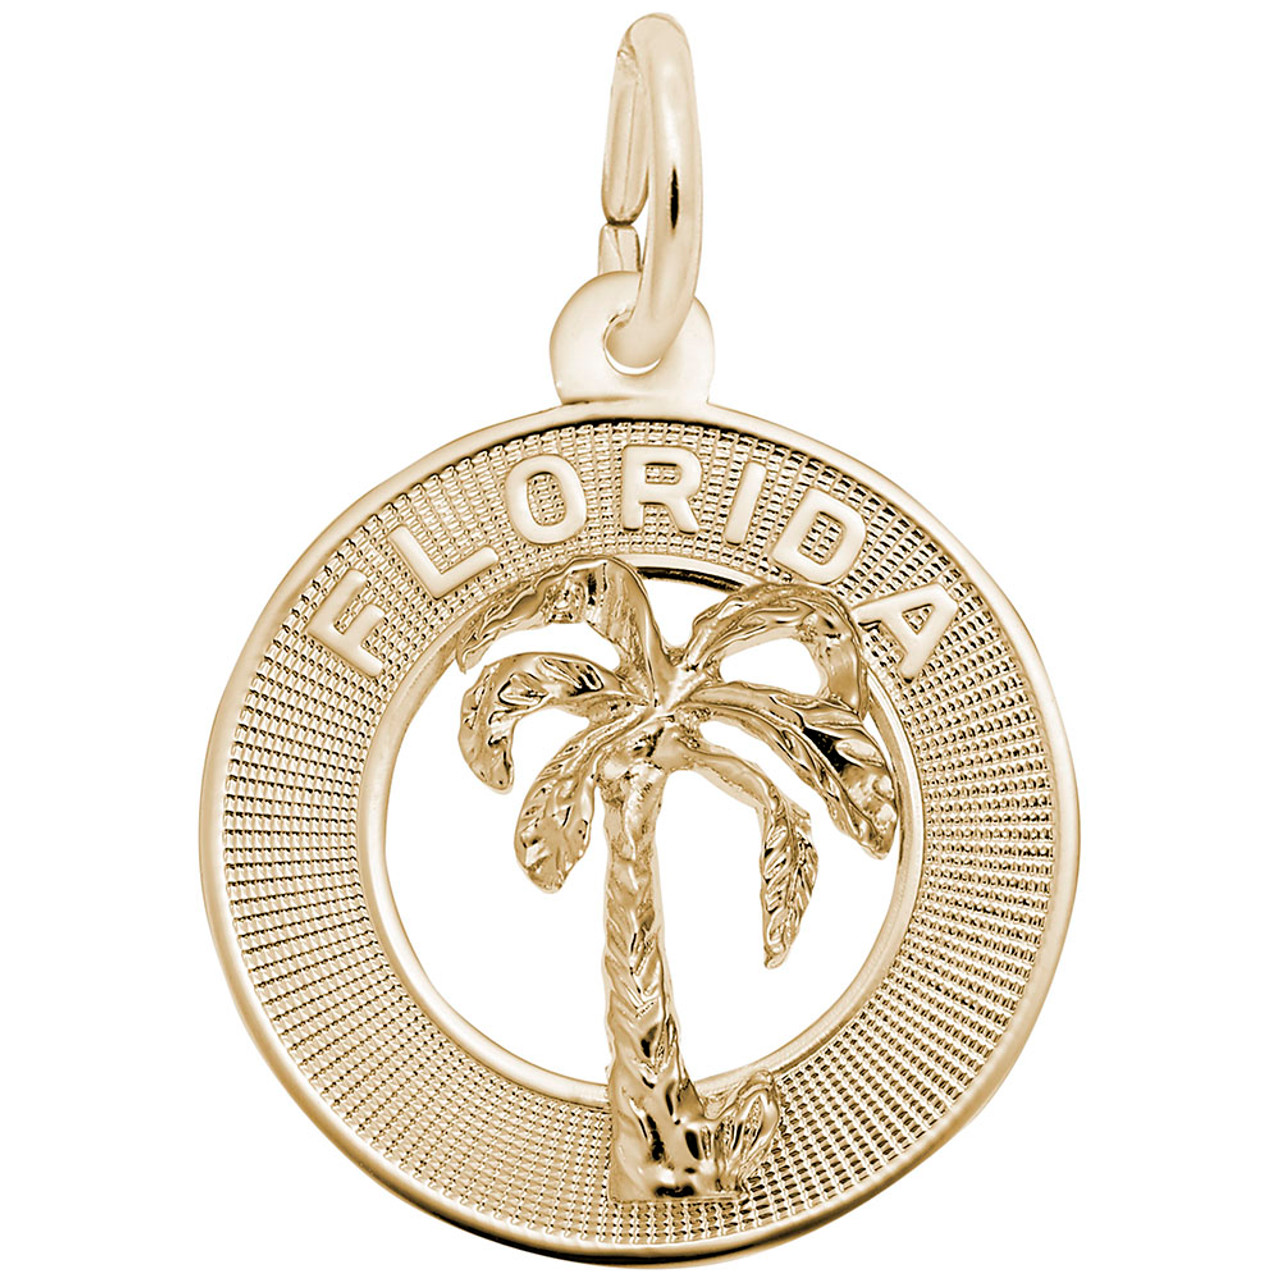 """Florida"" Palm Tree Ring Charm with Pearl Accent  - Gold Plate, 10k Gold, 14k Gold"